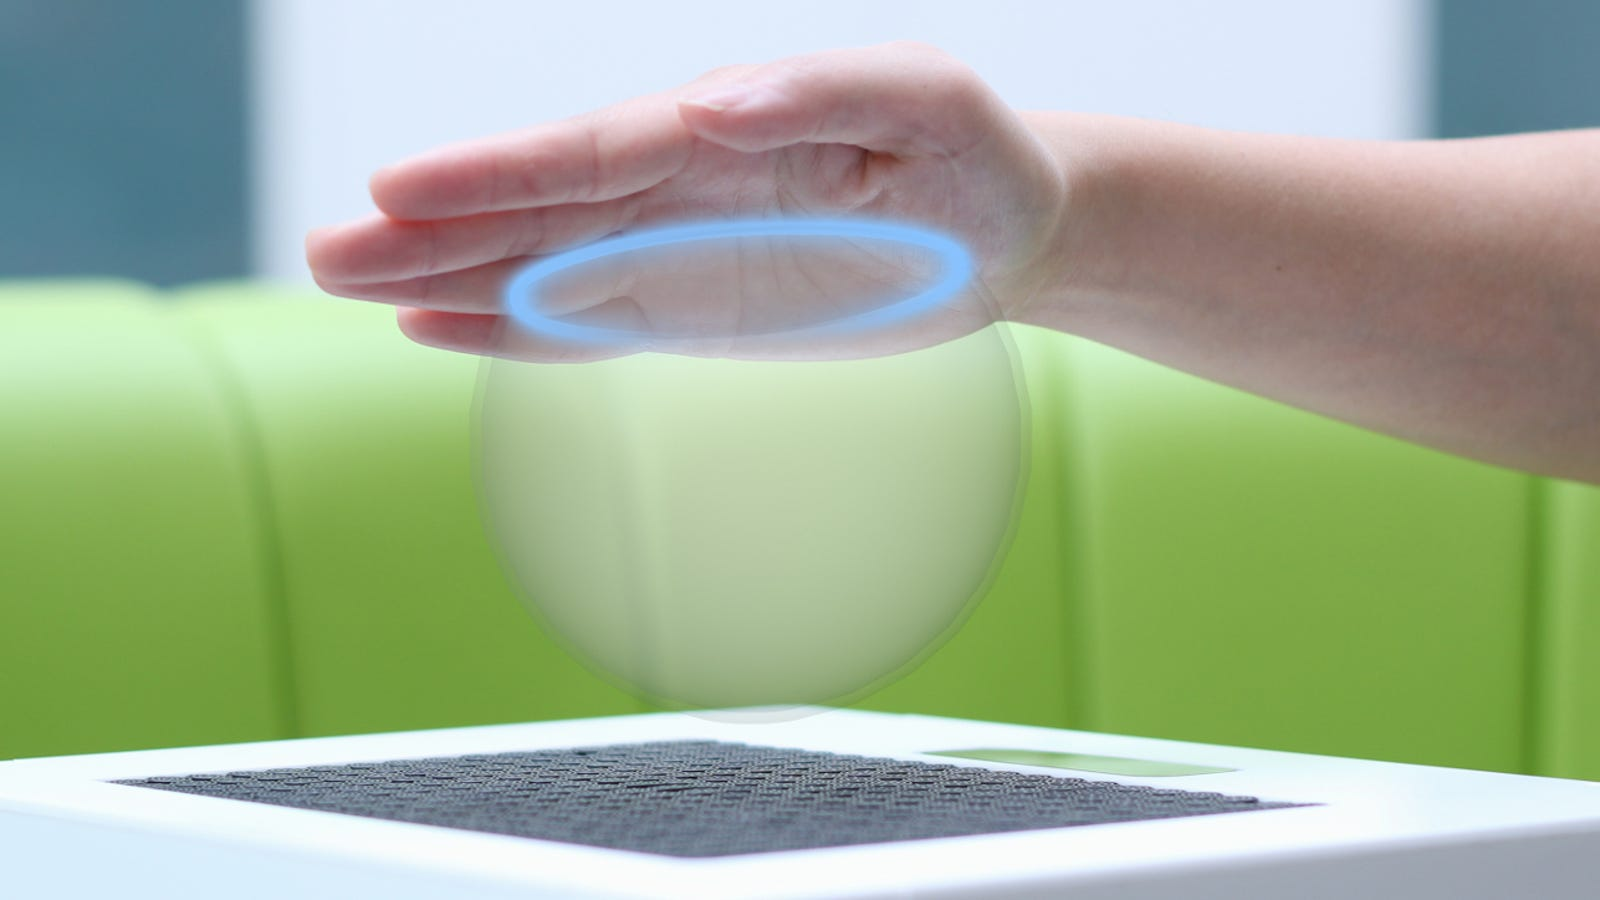 Ultrasound Can Let You Touch and Feel 3D Shapes in Thin Air